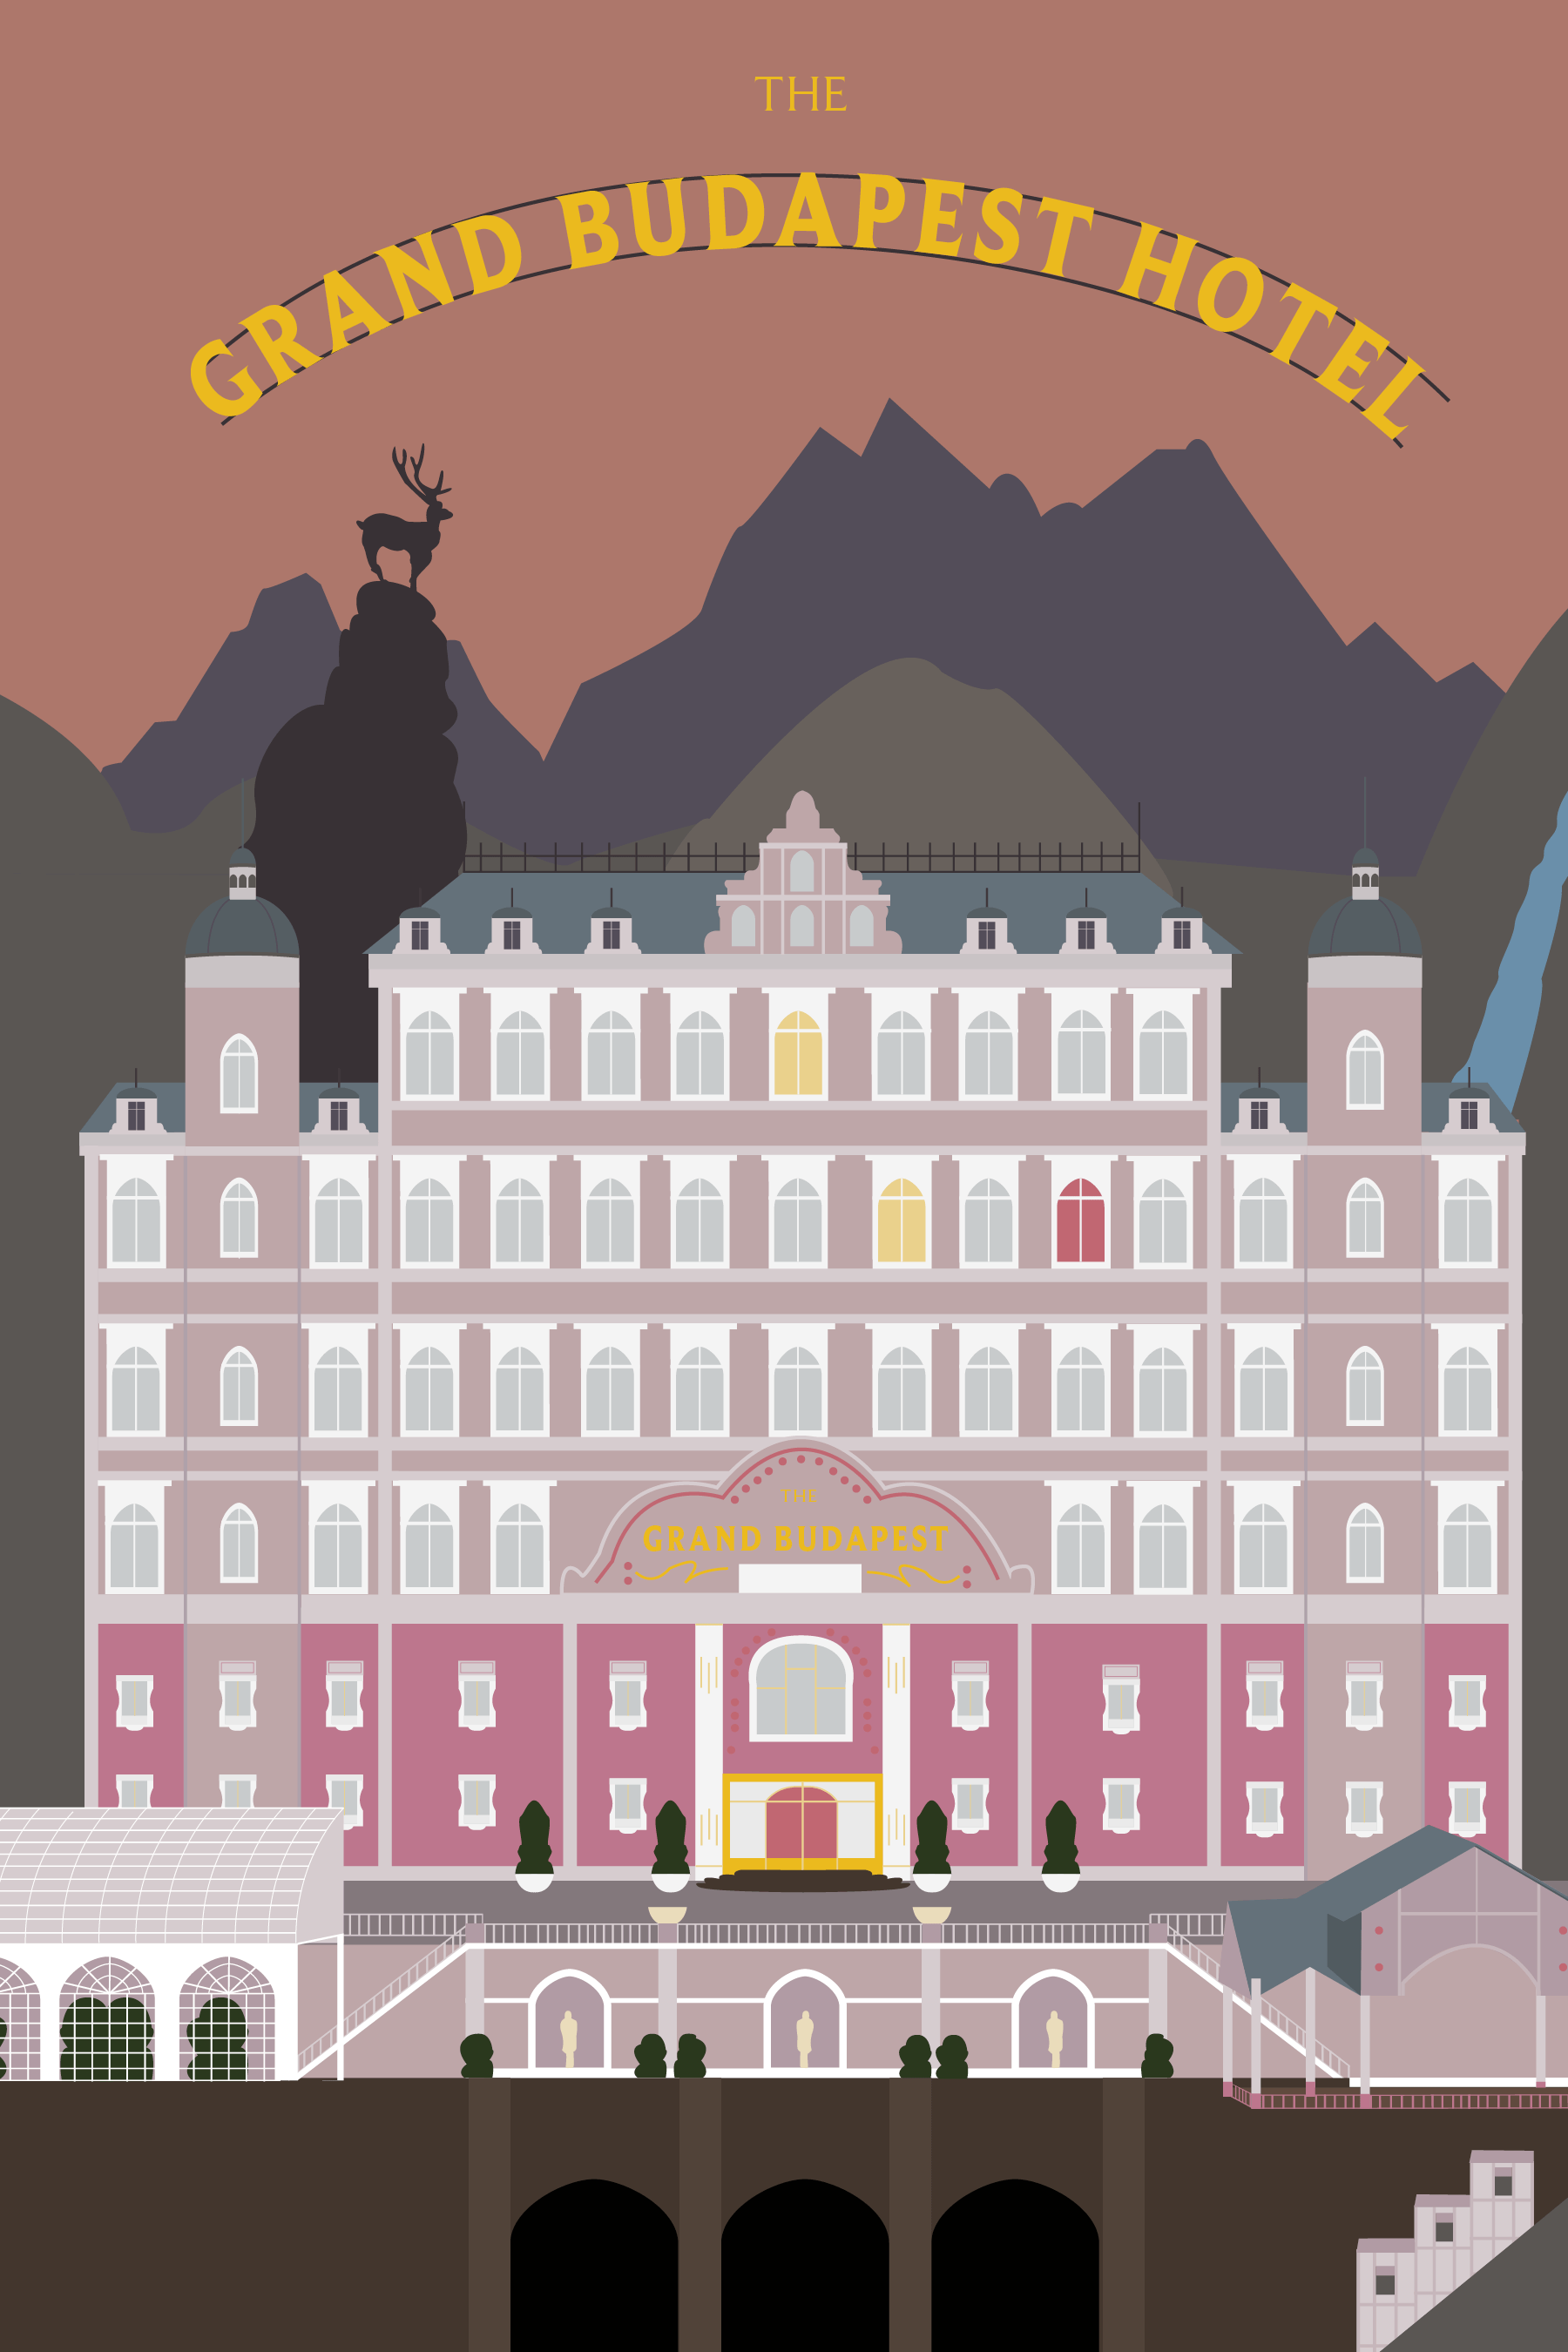 Cover art for the Grand Budapest Hotel